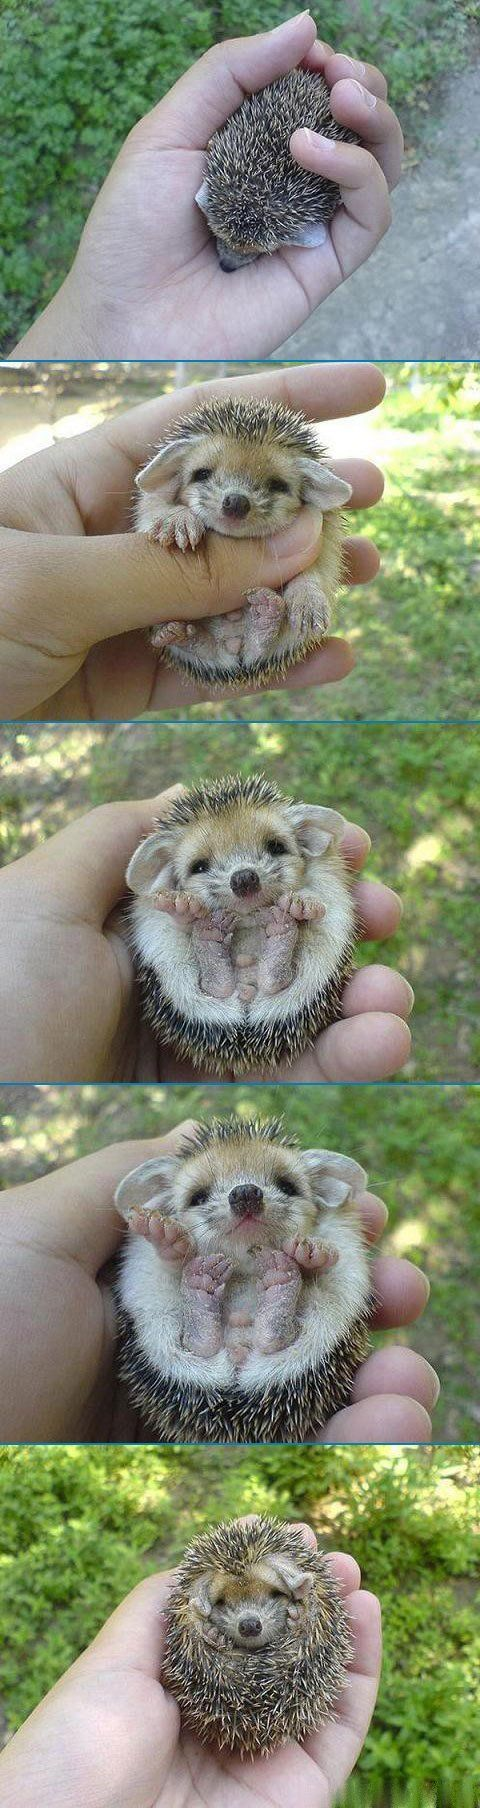 Someday I will own a hedgehog...then life will be complete.